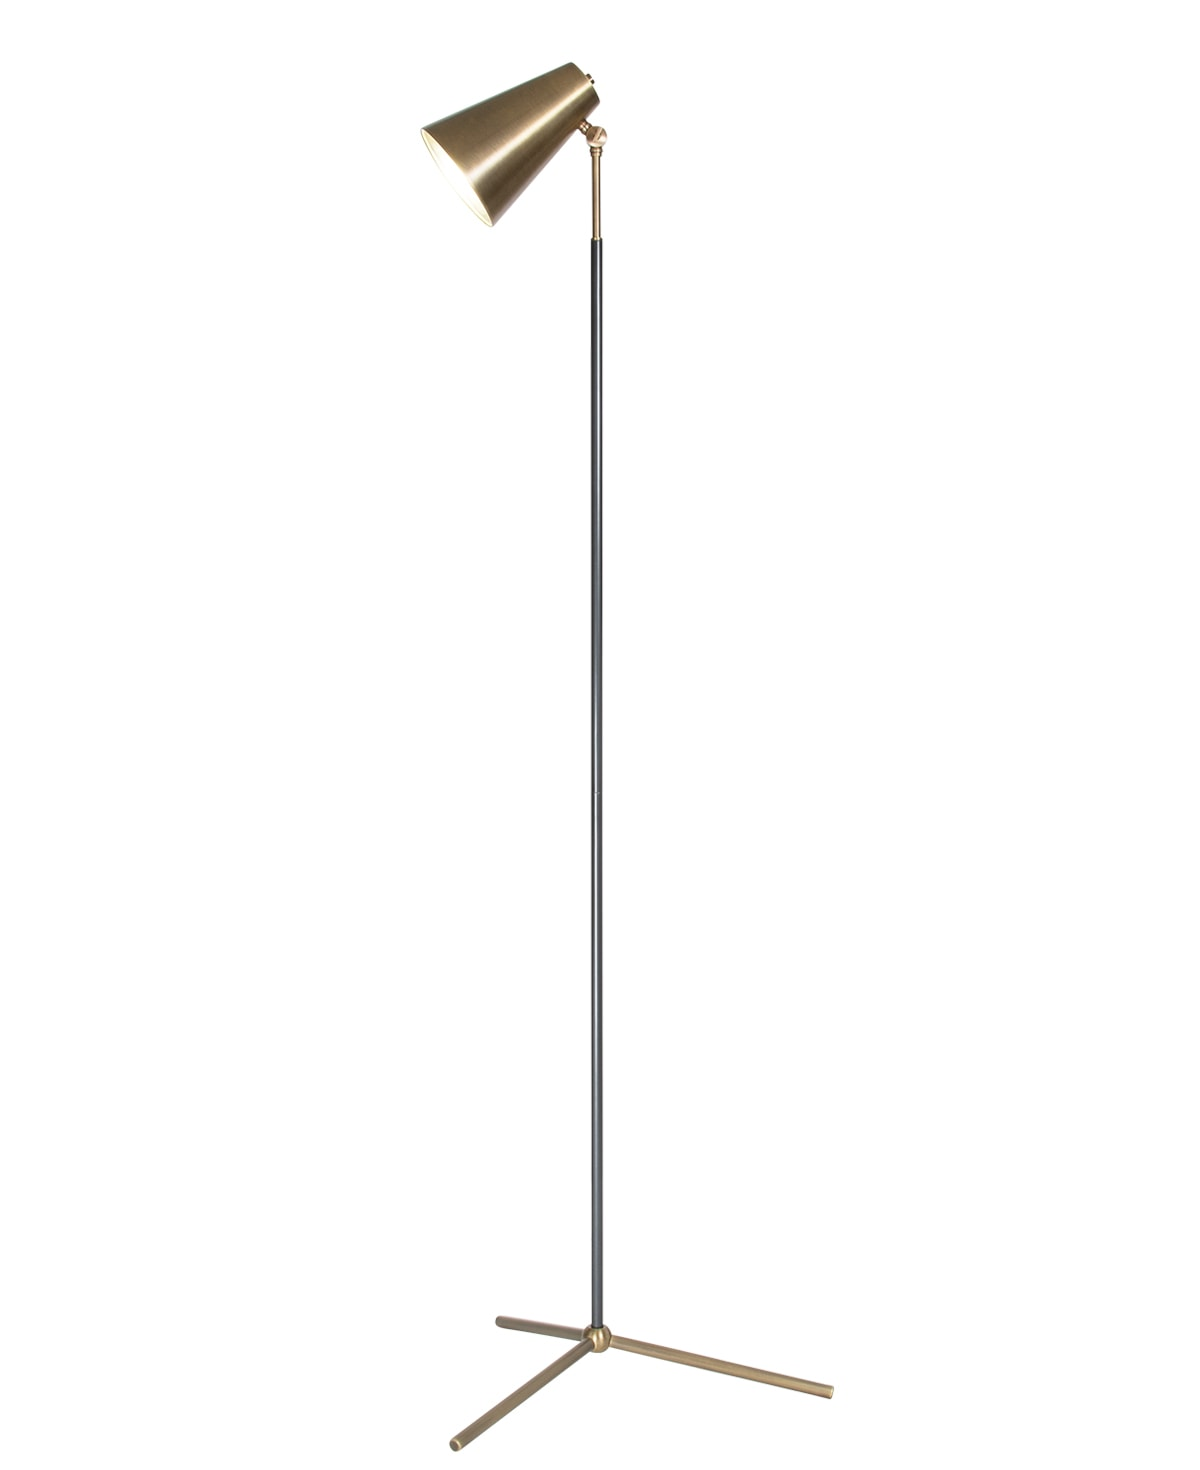 FlowDecor Maggie Floor Lamp in metal with antique brass finish and metal with gunmetal finish and  shade (# 4445)